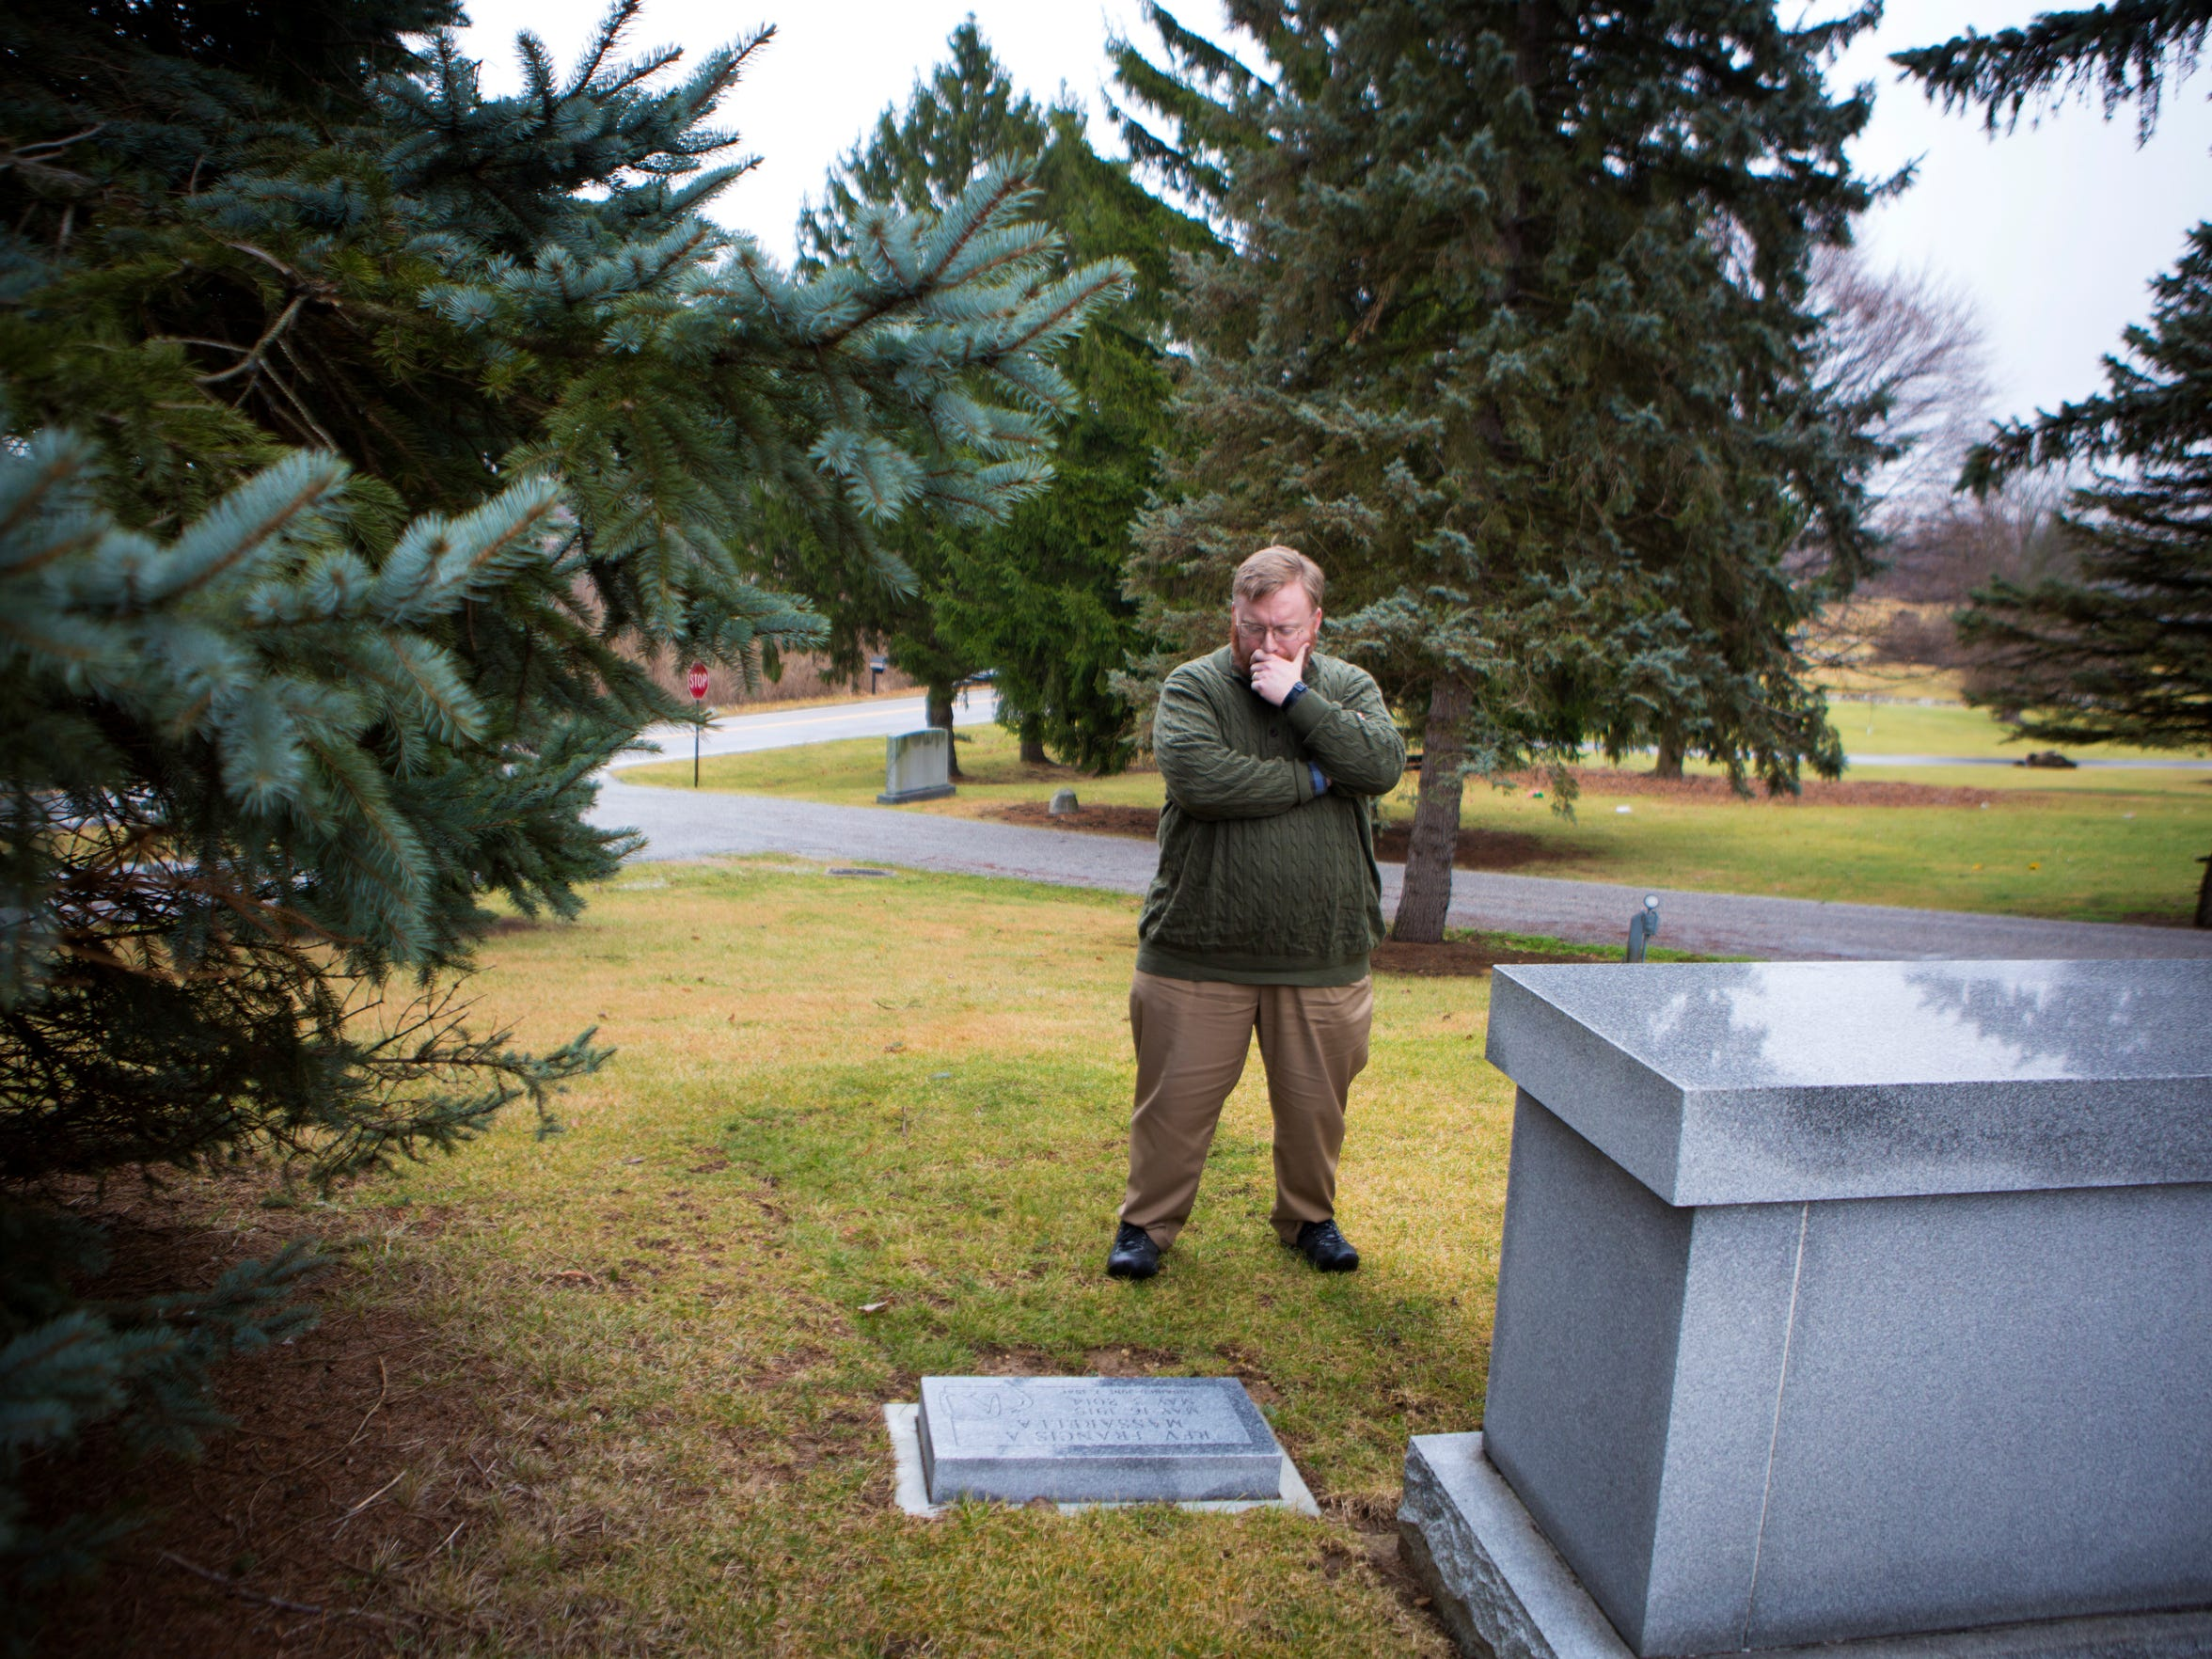 Michael stands at the grave of the Rev. Frank Massarella.